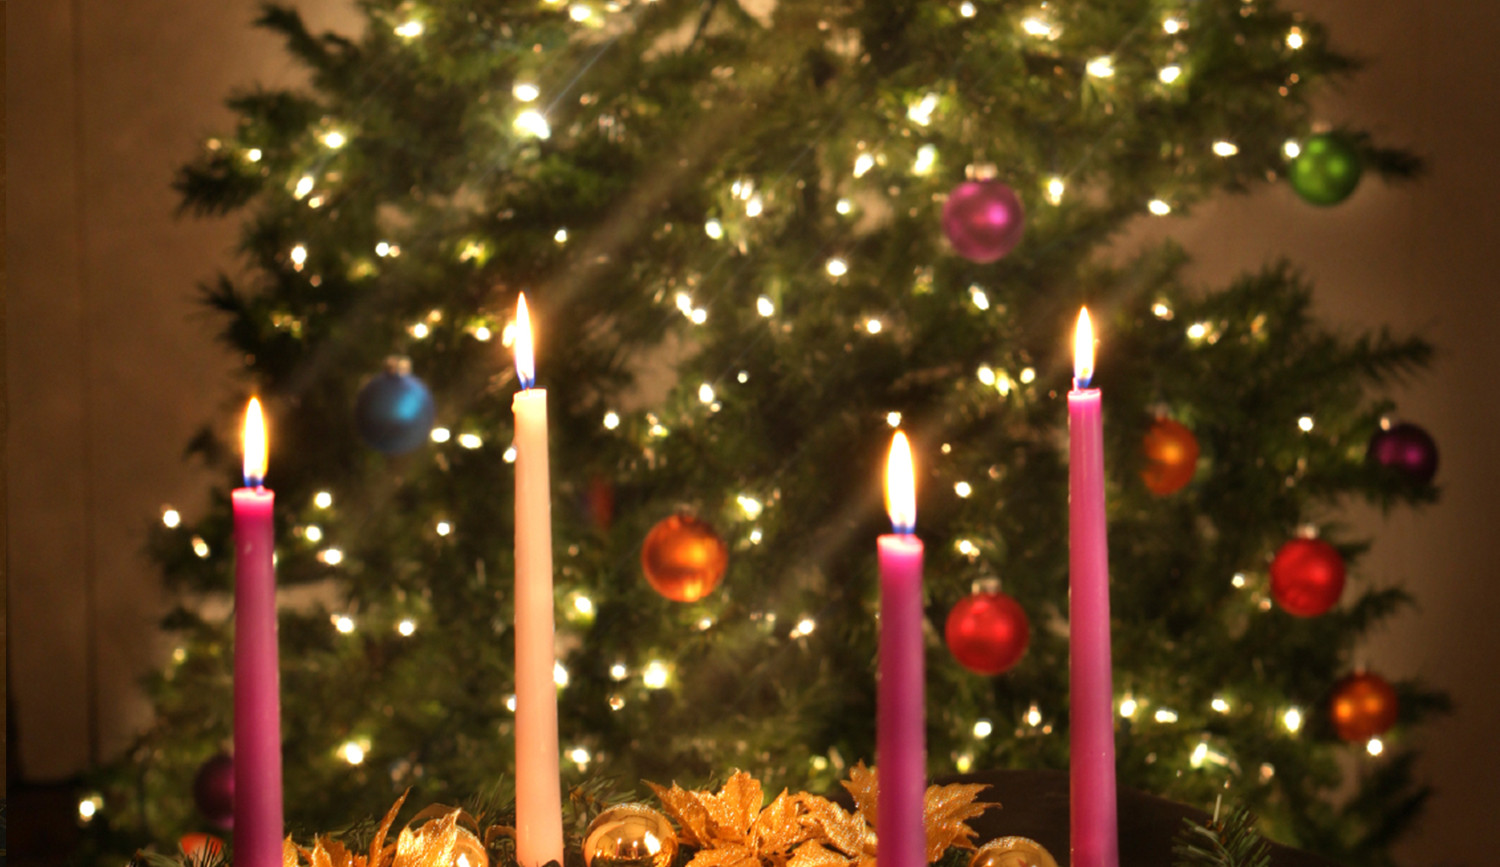 adventcandles-blog-120215